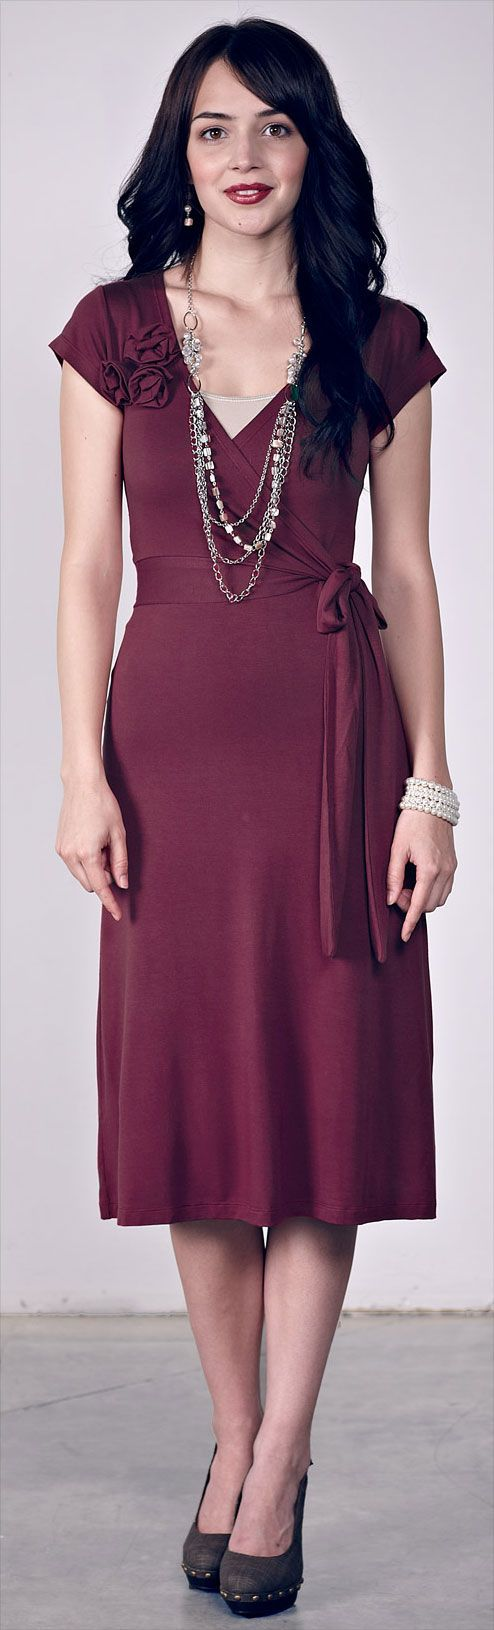 638ac6a6a5f89 Pin by Jen Clothing on LDS Modest Clothing | Maroon dress, Dresses ...